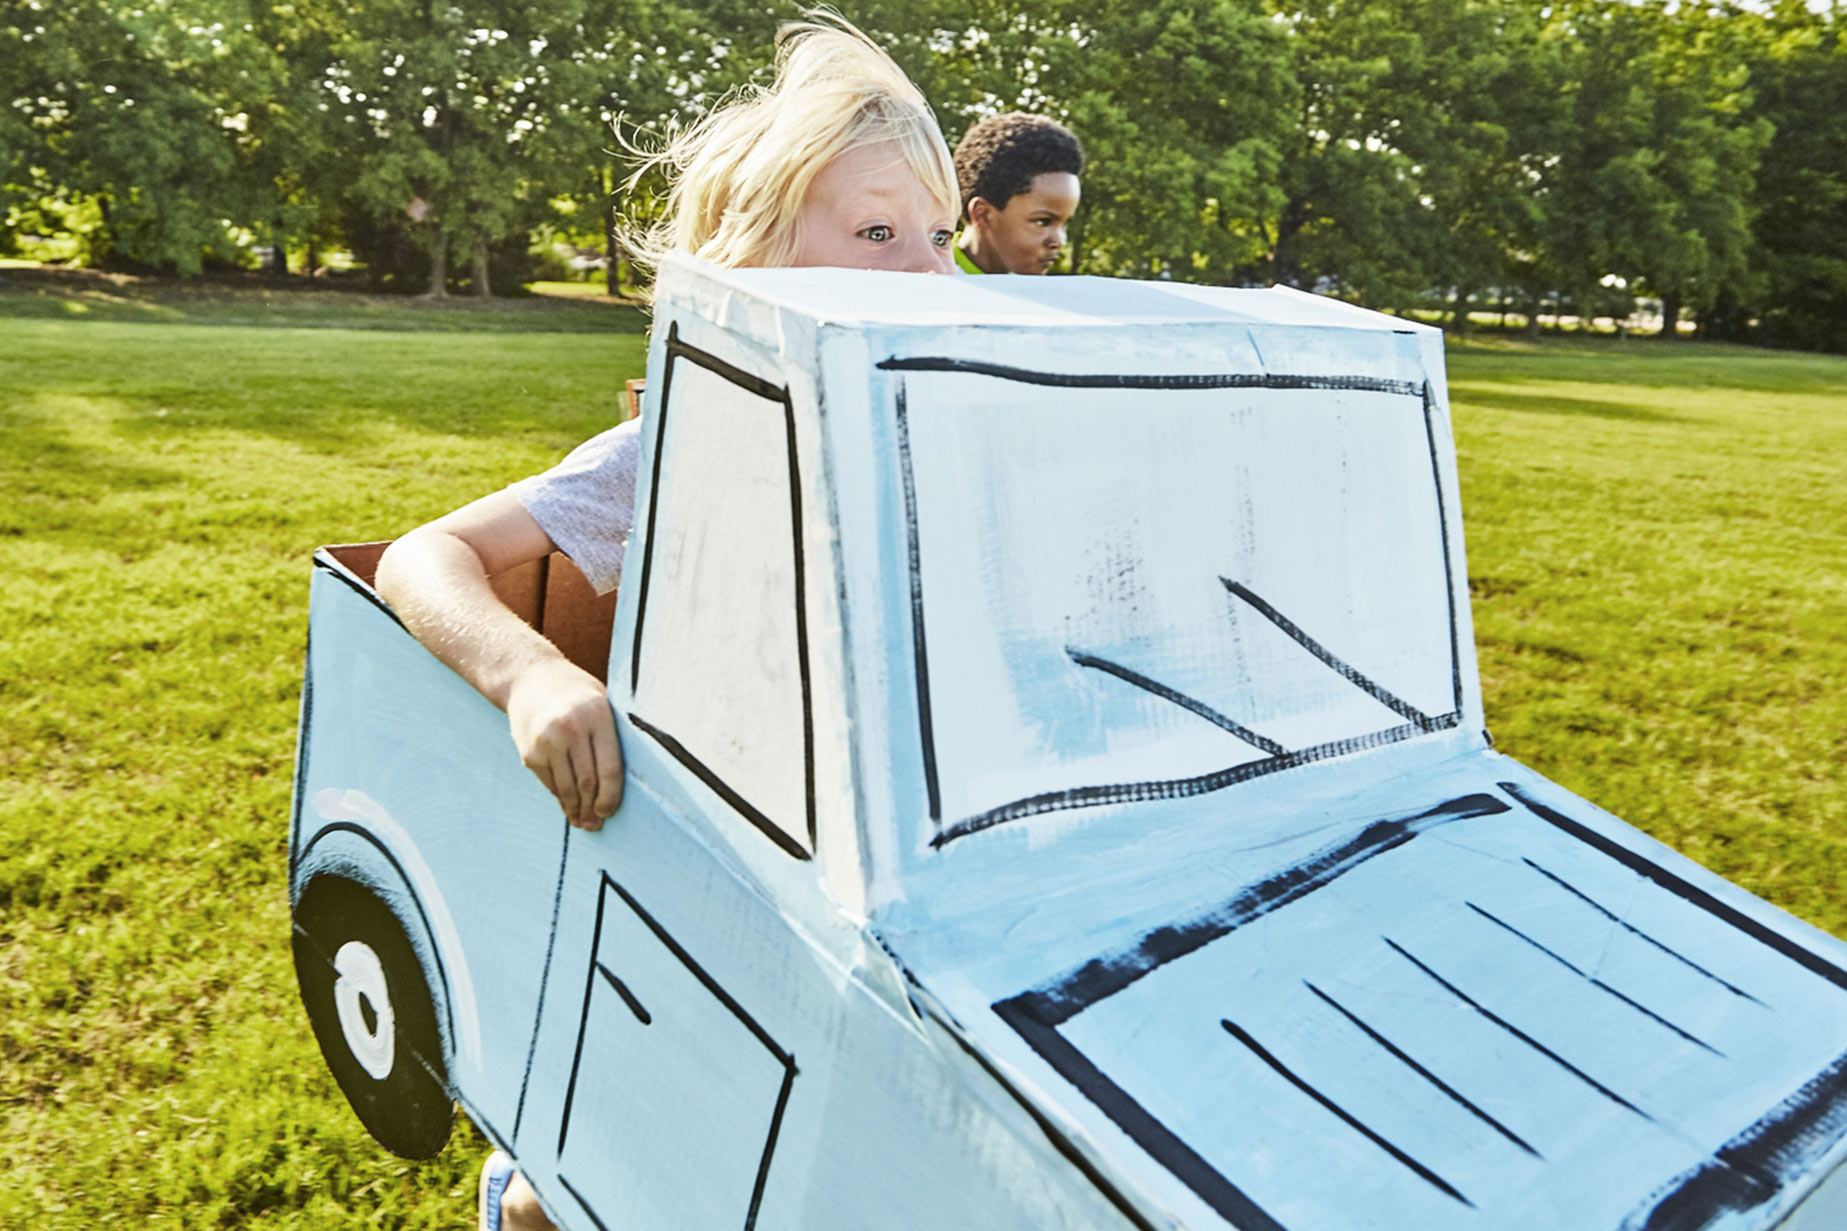 KIDS-Summer_RACE-CAR-Kids_164